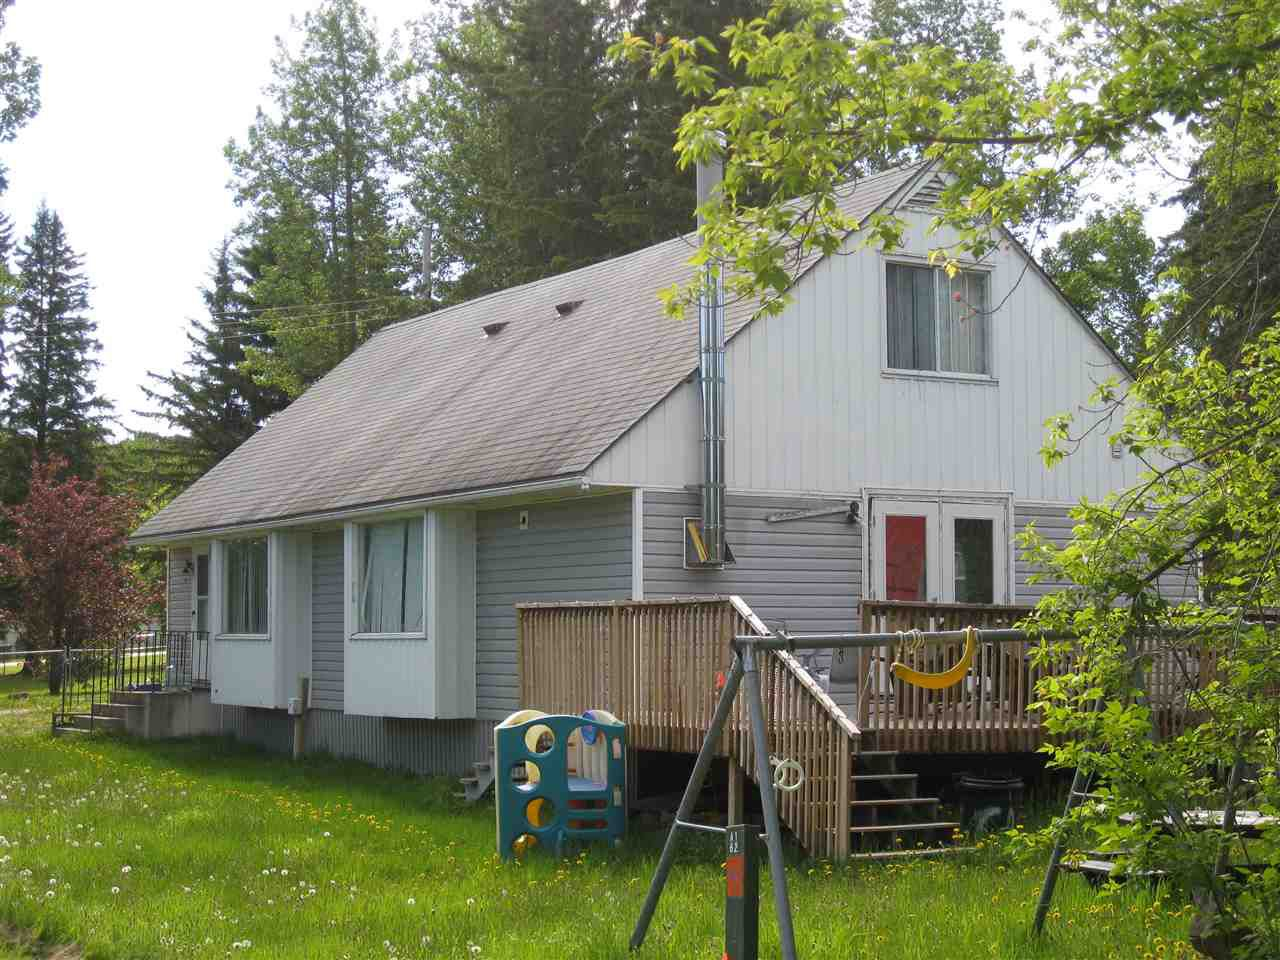 Main Photo: 1315 Park Crecsent: Rural Lac Ste. Anne County House for sale : MLS®# E4154134